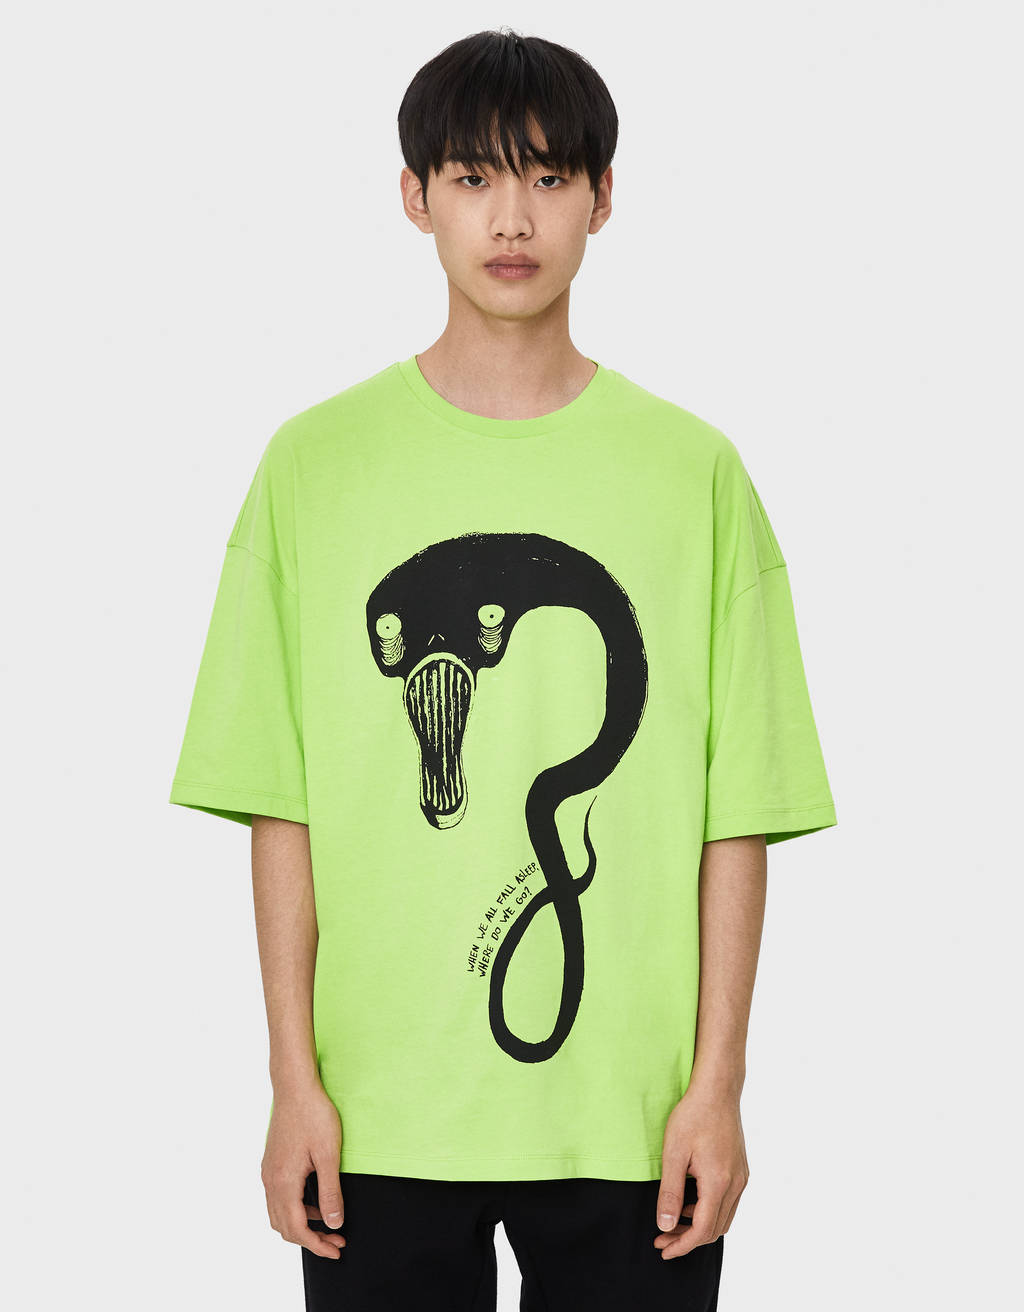 Camiseta Billie Eilish x Bershka